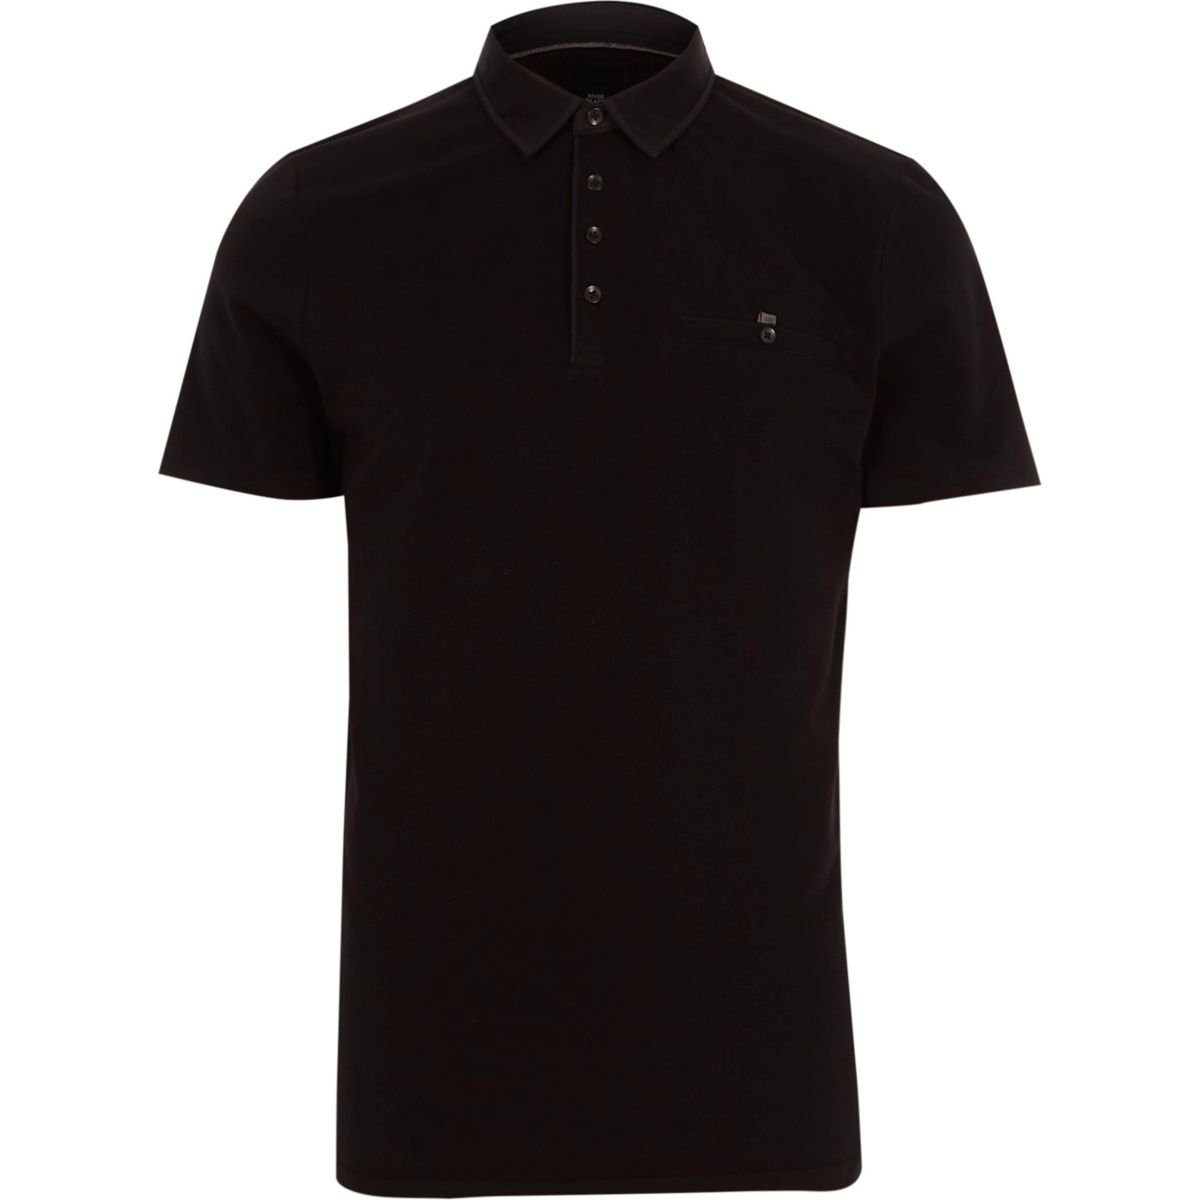 Black slim fit short sleeve polo shirt